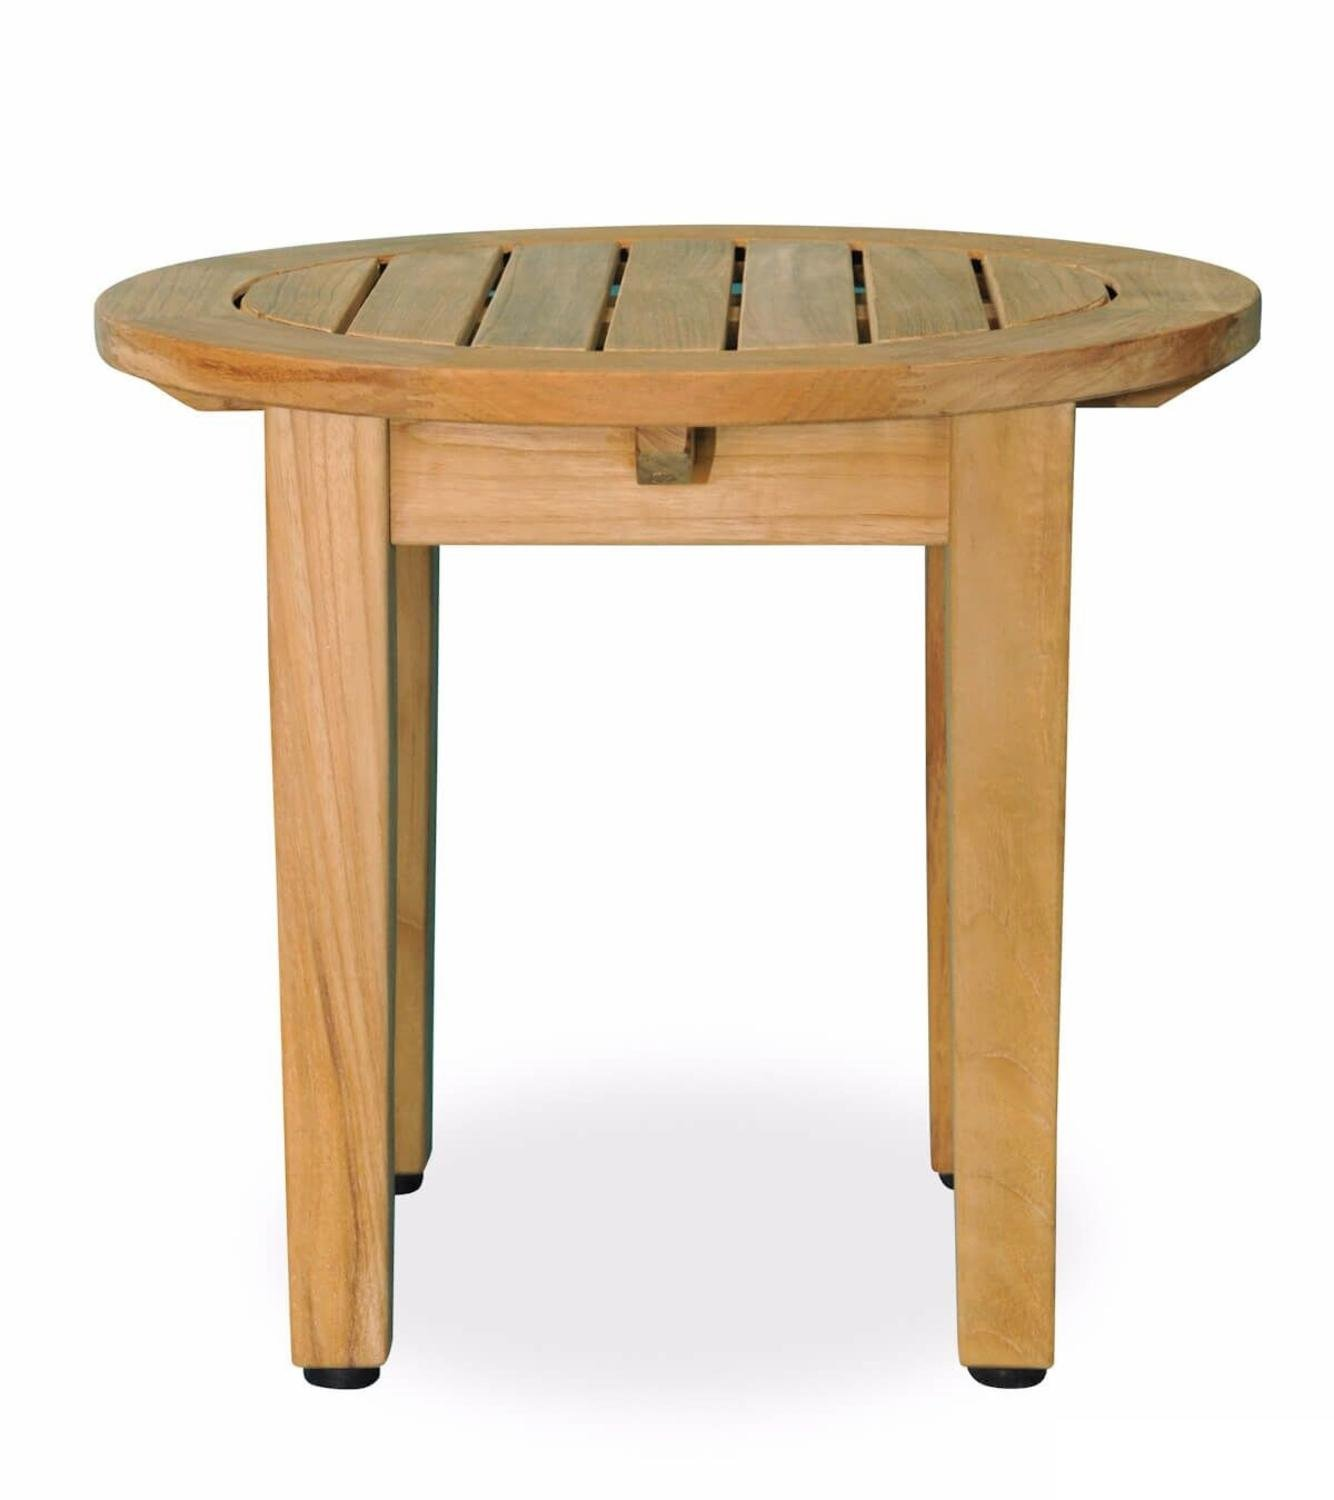 eco friendly furnishings natural teak wooden outdoor side table patio round with tapered legs garden floor accent lamp beverage tub stand target metal drop leaf chair storage